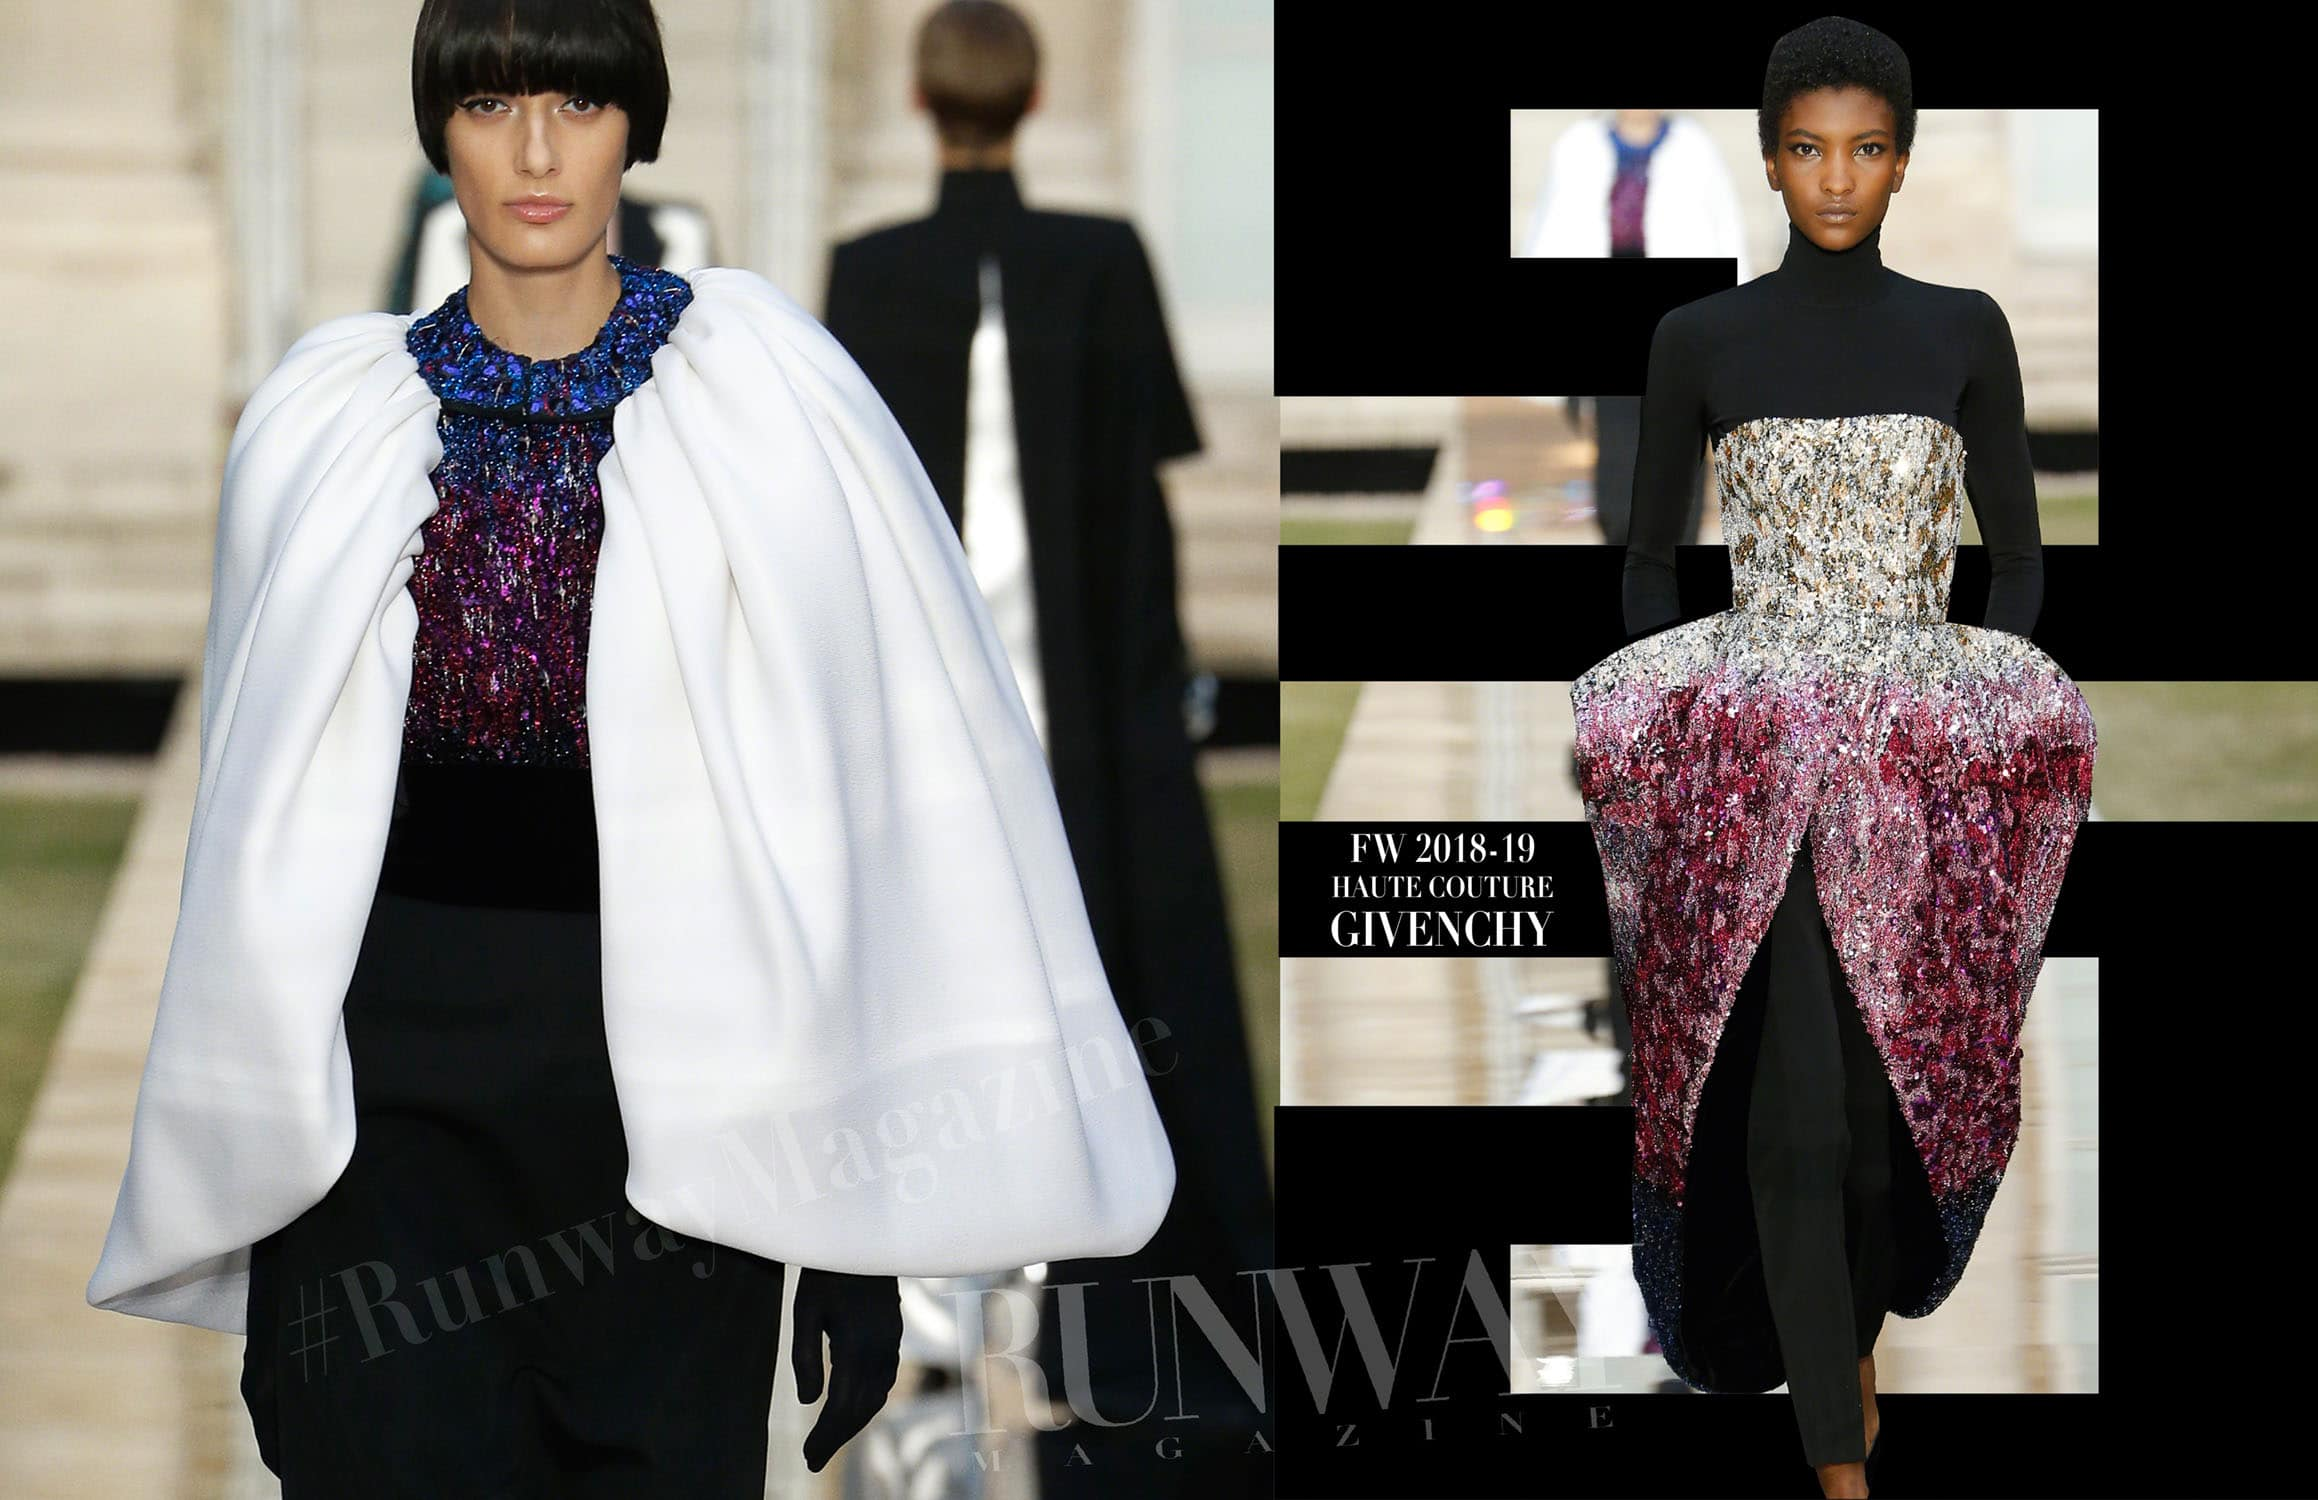 Givenchy Haute Couture Fall Winter 2018-19 Paris Fashion Week by RUNWAY MAGAZINE